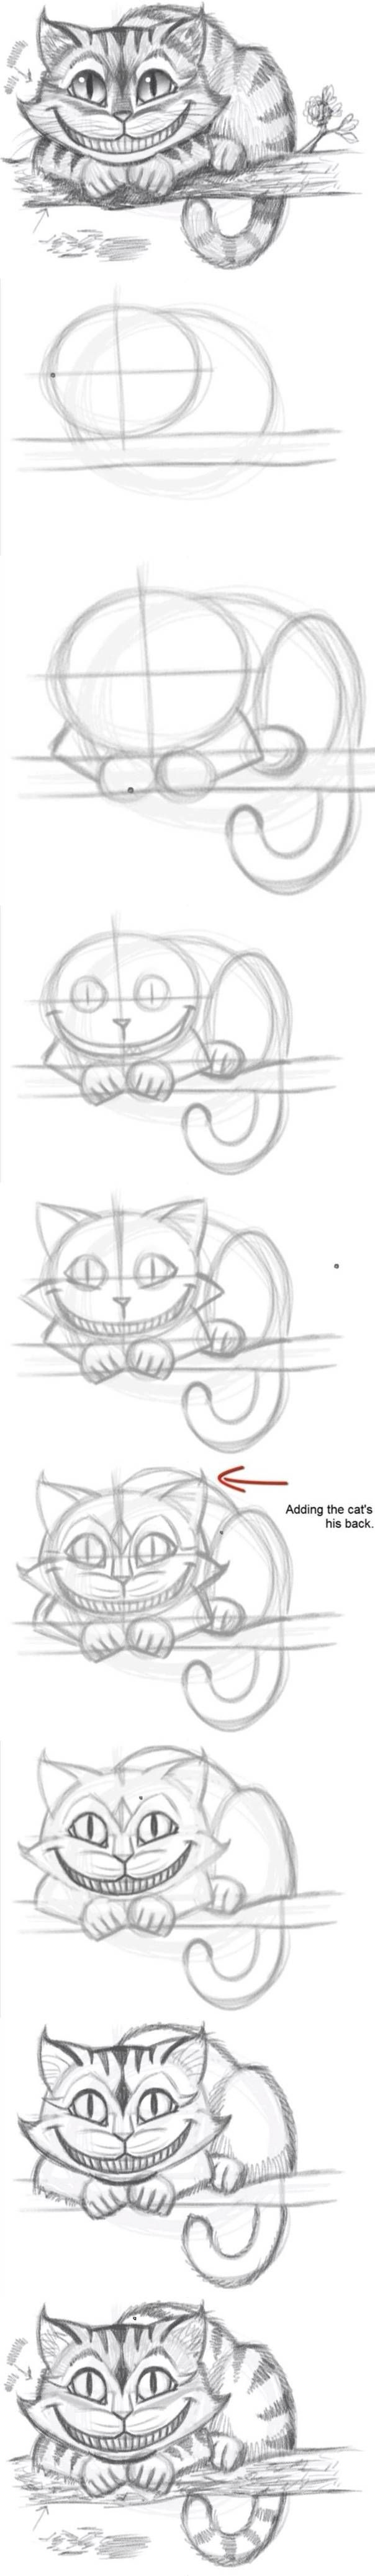 How to Draw the Cheshire Cat by usefuldiy. | Realista | Pinterest ...